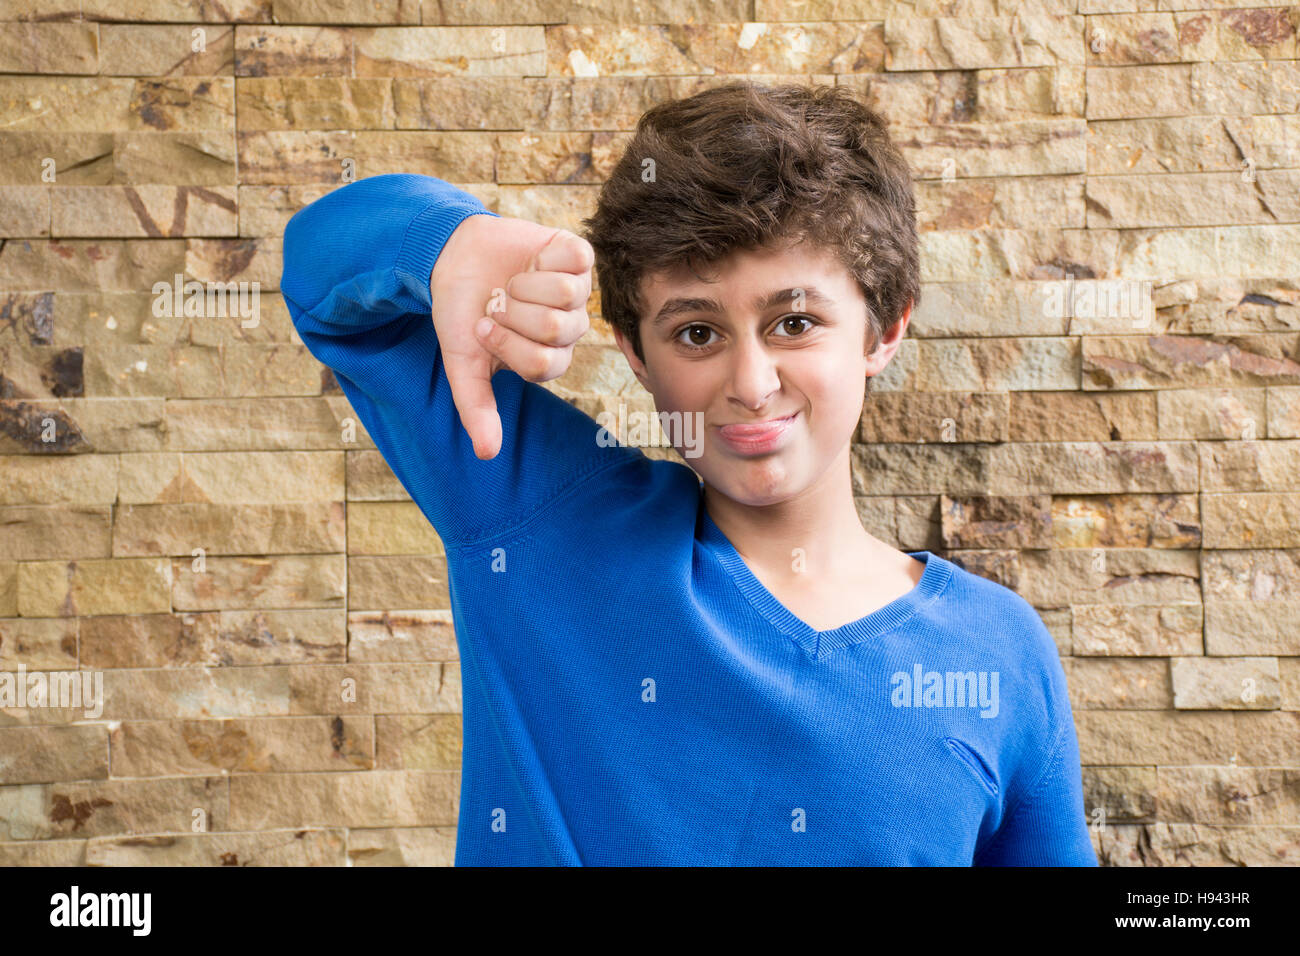 Cheeky boy sticking his tongue out and showing a thumbs down sign - Stock Image